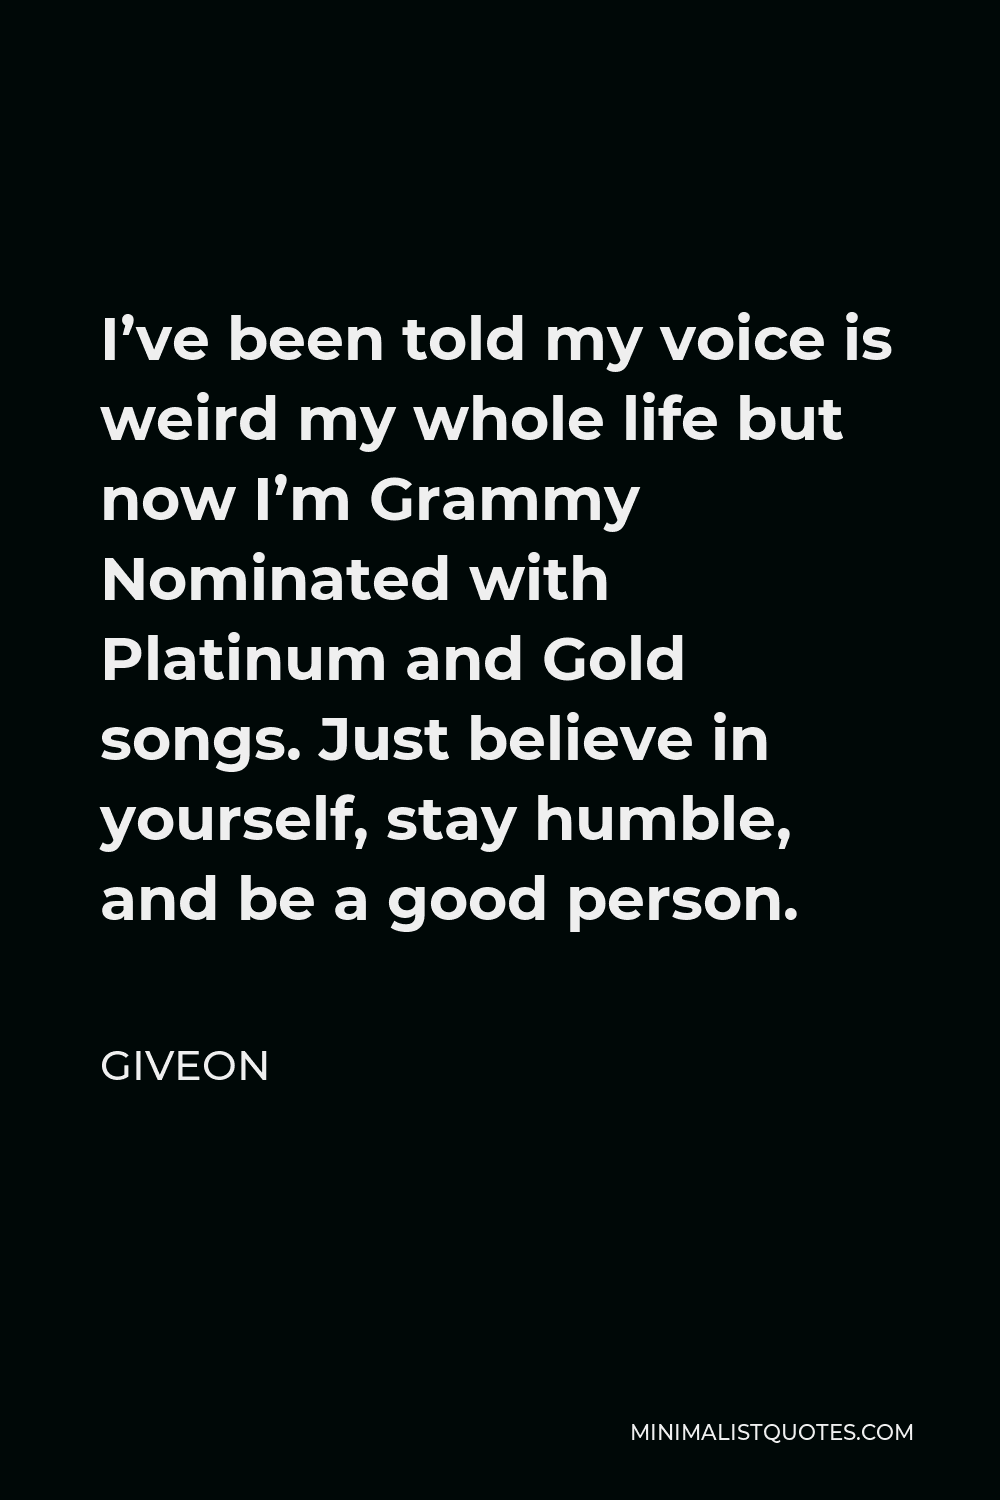 Giveon Quote - I've been told my voice is weird my whole life but now I'm Grammy Nominated with Platinum and Gold songs. Just believe in yourself, stay humble, and be a good person.